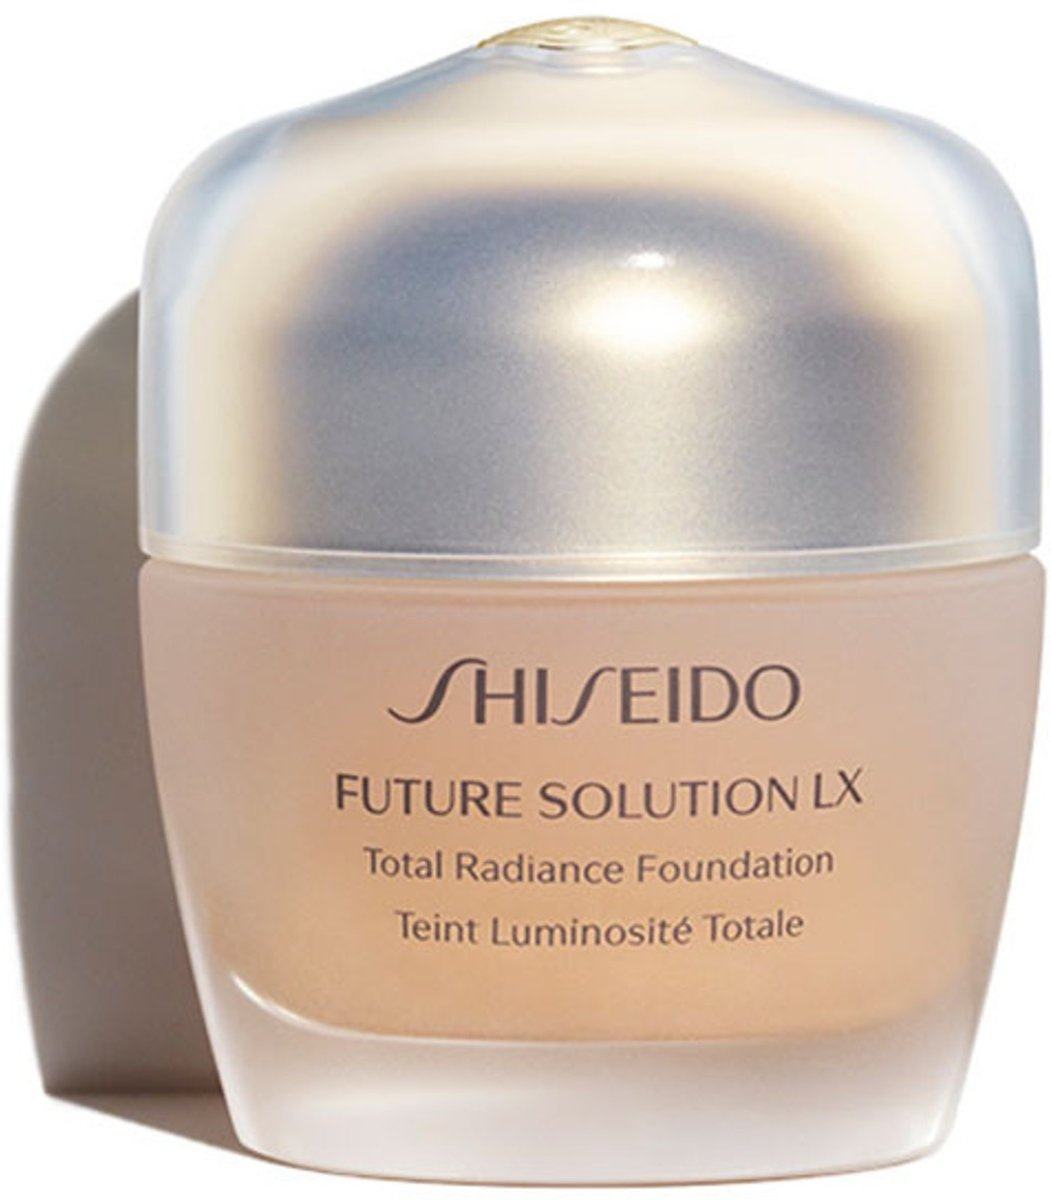 Shiseido Future Solution LX Total Radiance Foundation 30 ml